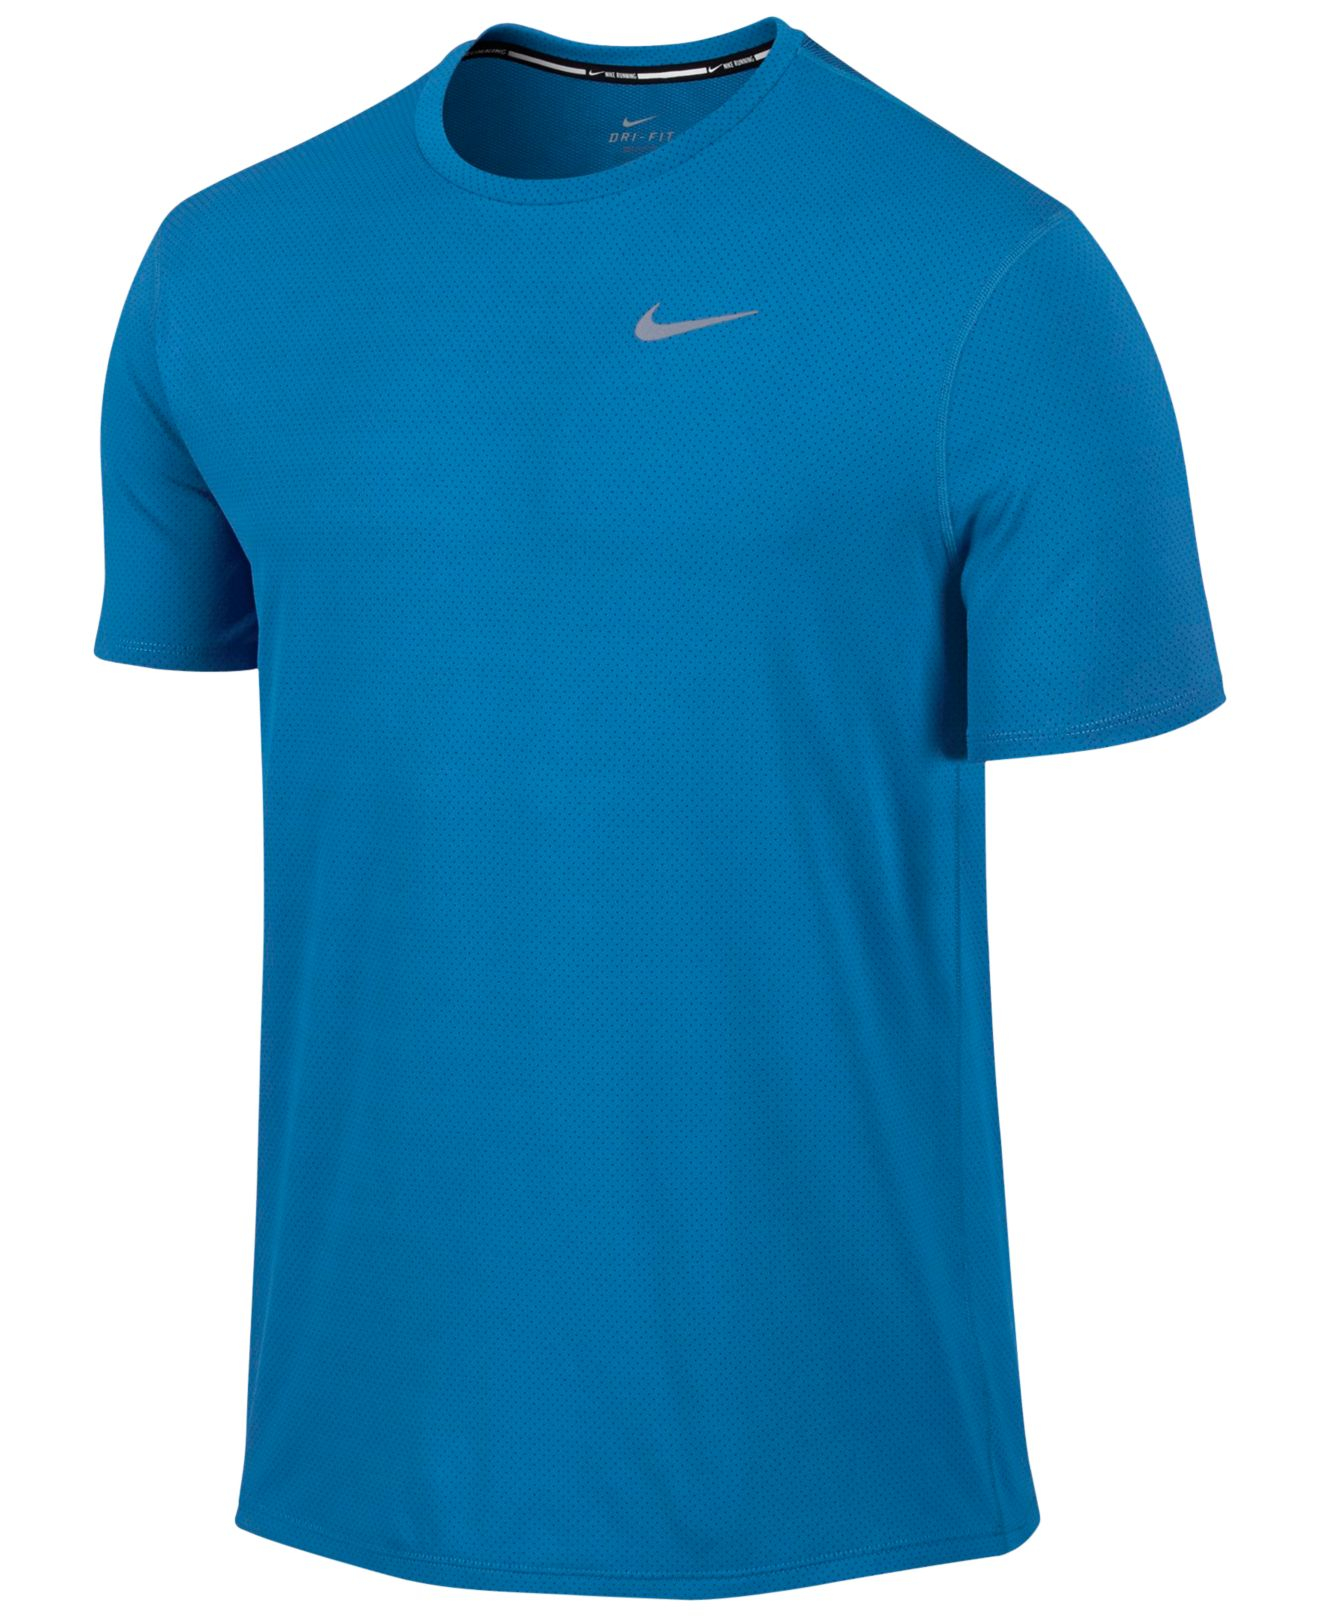 Discover the best Men's Running Shirts in Best Sellers. Find the top most popular items in Amazon Sports & Outdoors Best Sellers.